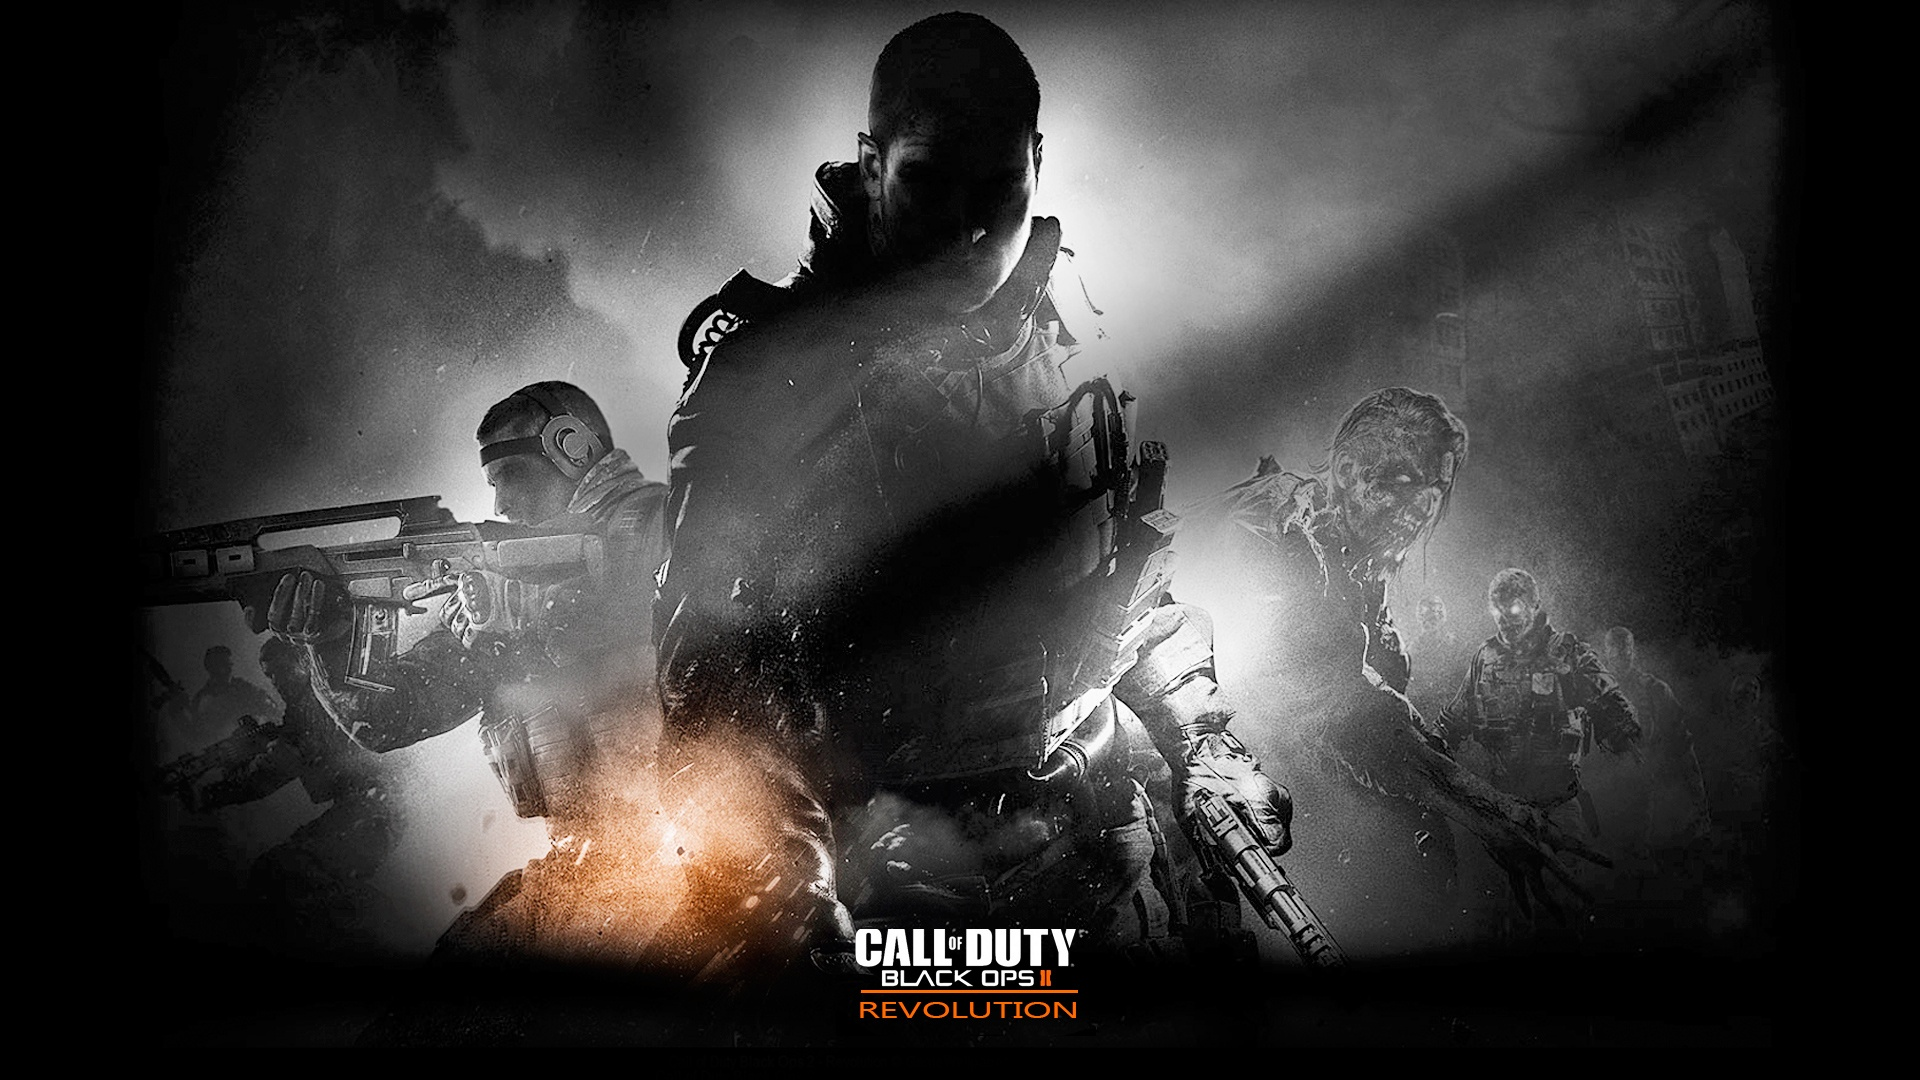 Call of Duty Black Ops 2 Game Full HD Desktop Wallpapers 1080p 1920x1080